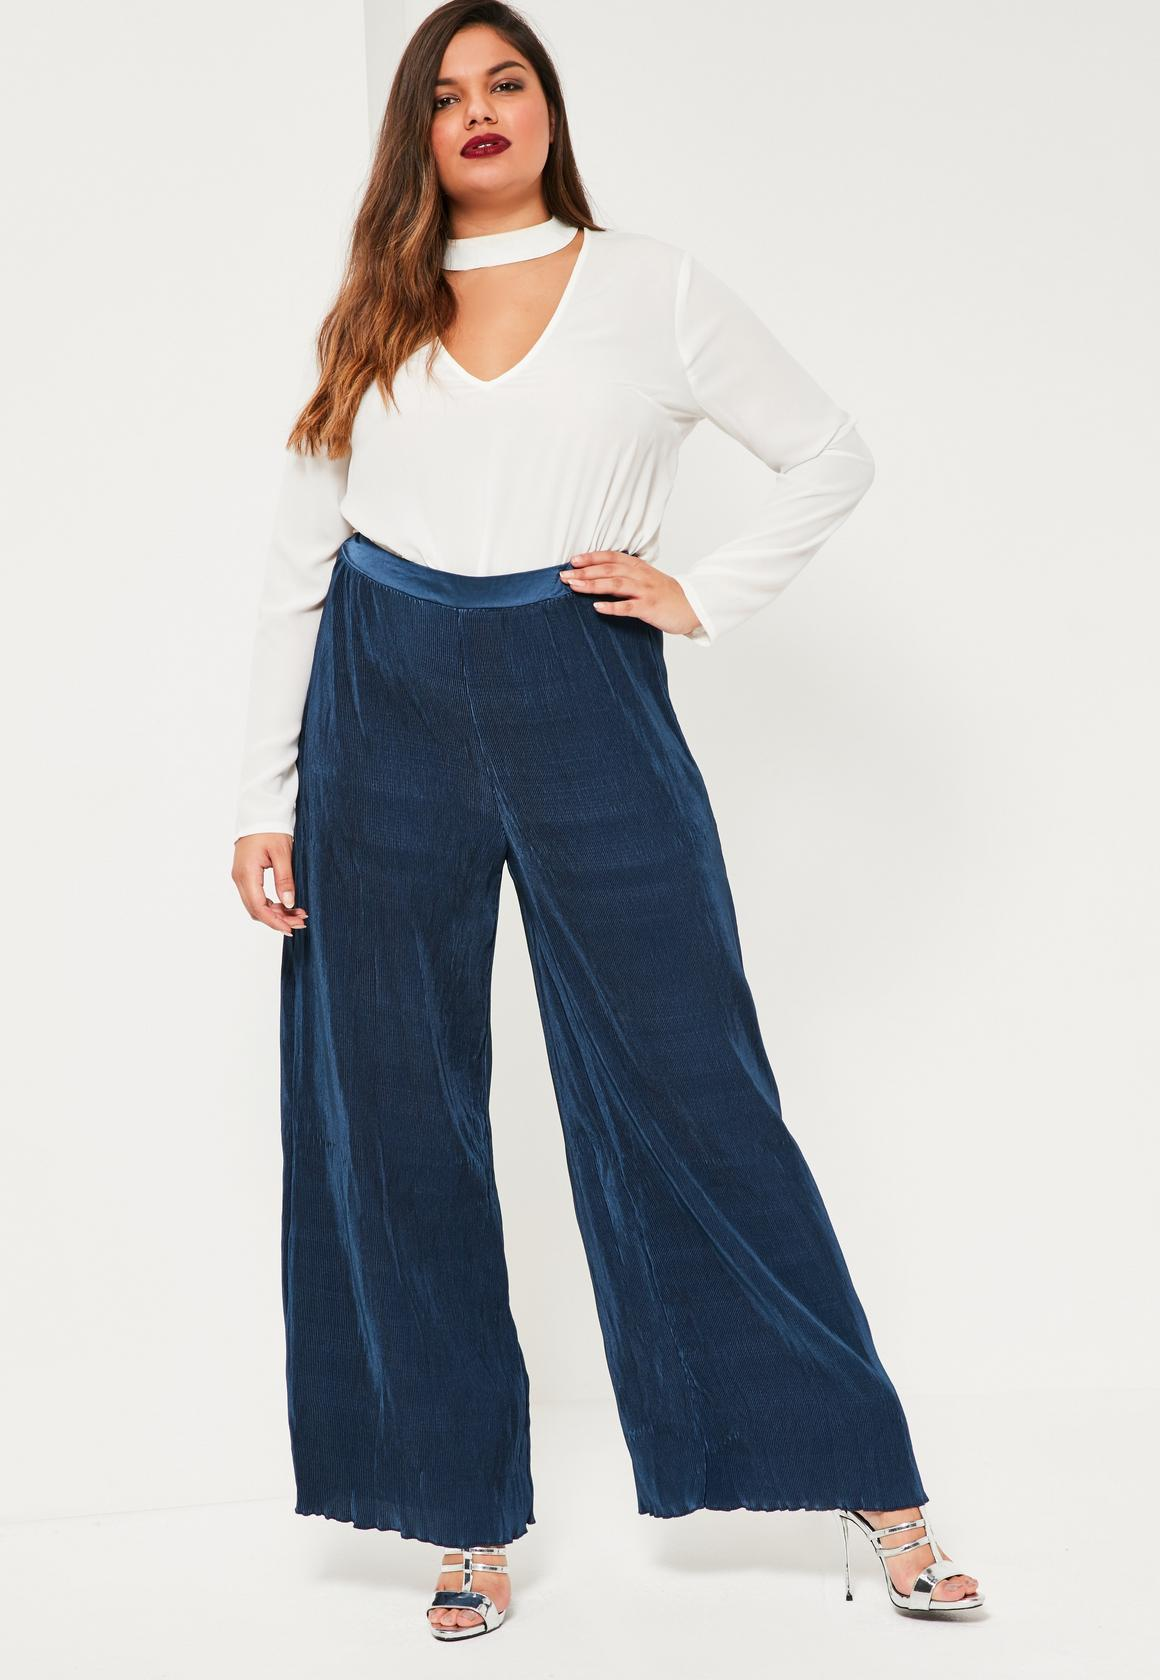 plus size pants previous next wmtjaat